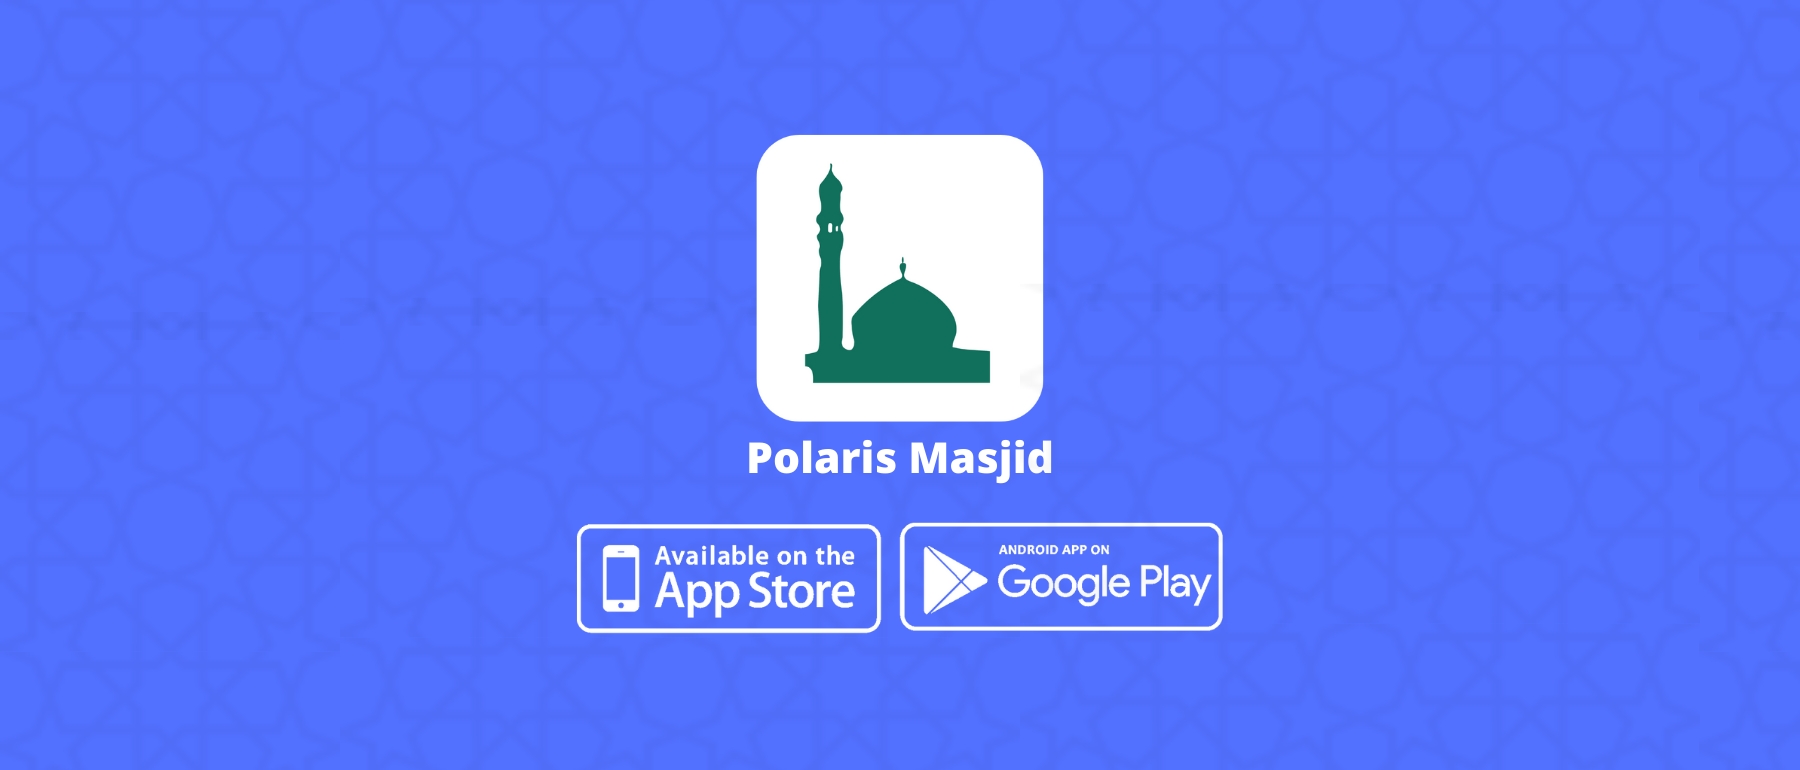 Install our Masjid Phone App